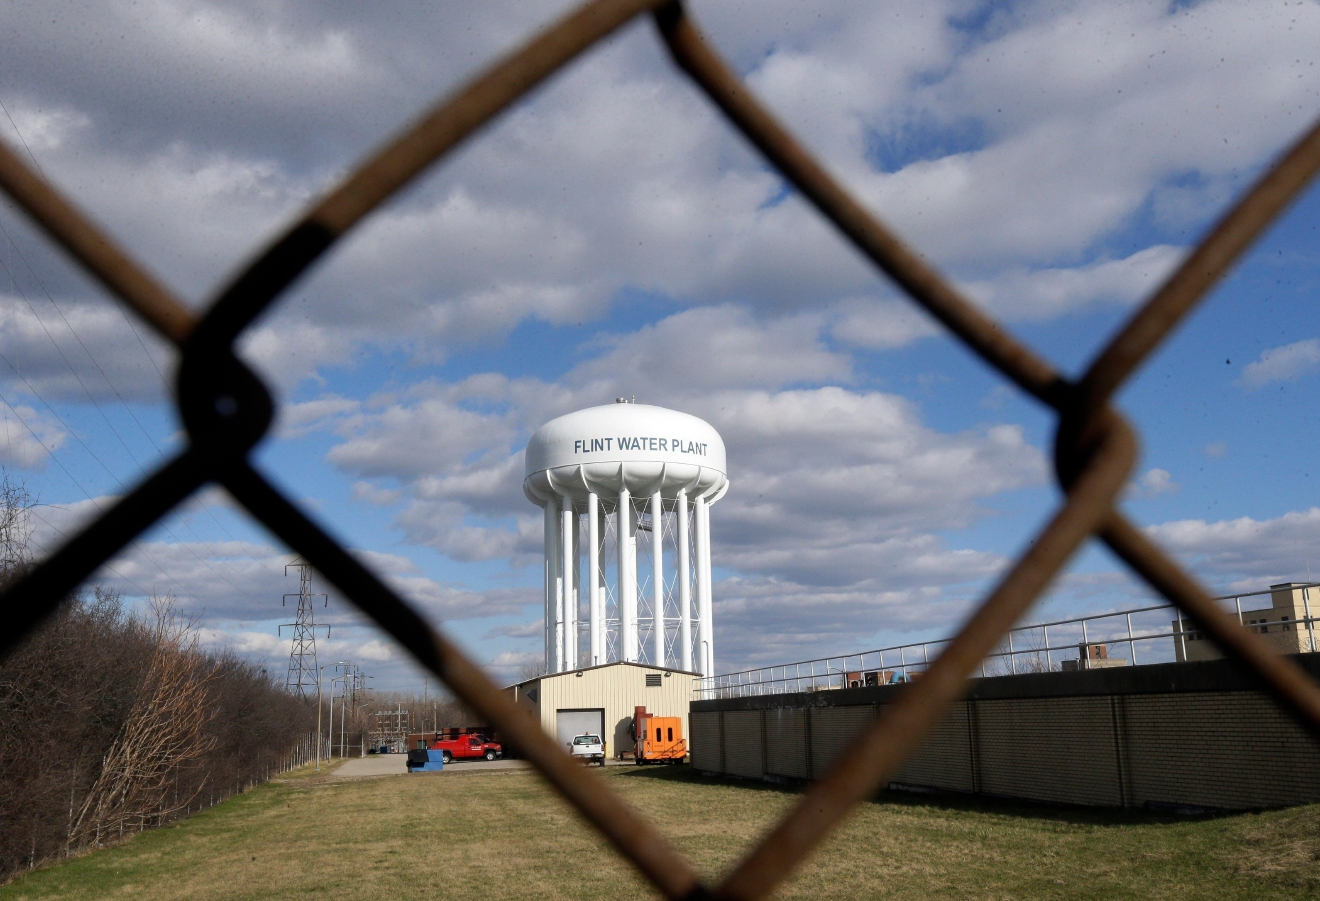 FILE - This March 21, 2016 file photo shows the Flint Water Plant water tower in Flint, Mich. Michigan Gov. Rick Snyder is calling for a halt of administrative investigations into how two state agencies dealt with the Flint drinking water crisis after being warned they are hampering state and federal criminal probes. Snyder's office released letters Thursday May 26, 2016, from the state attorney general and a federal prosecutor. (AP Photo/Carlos Osorio File)